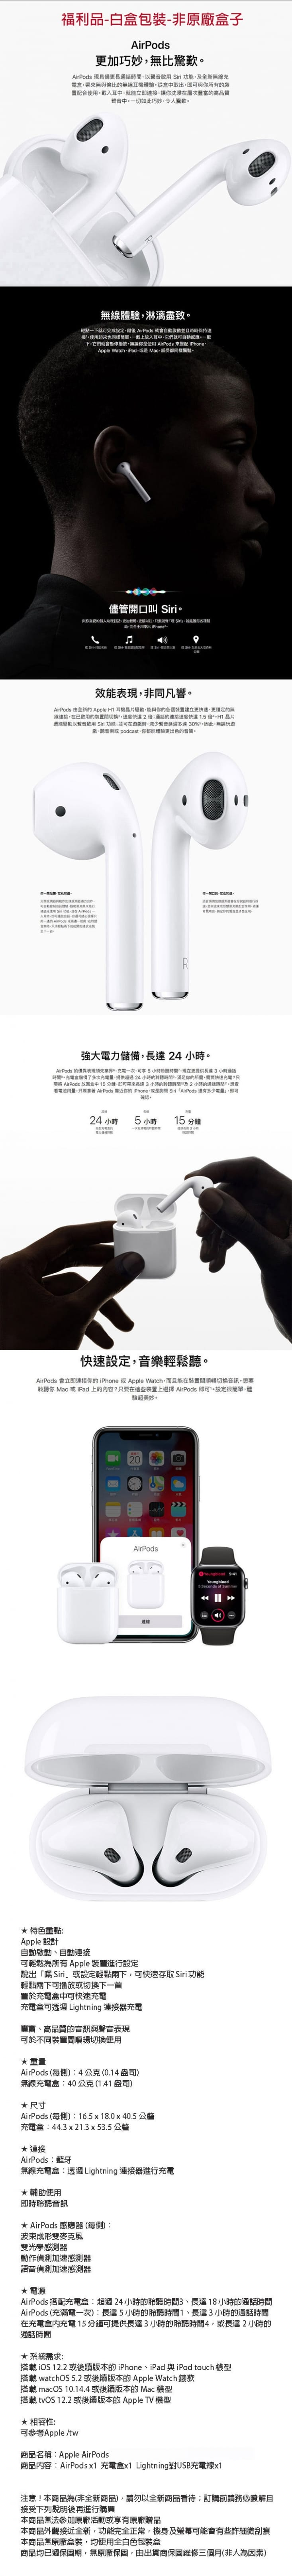 Apple AirPods藍牙耳機